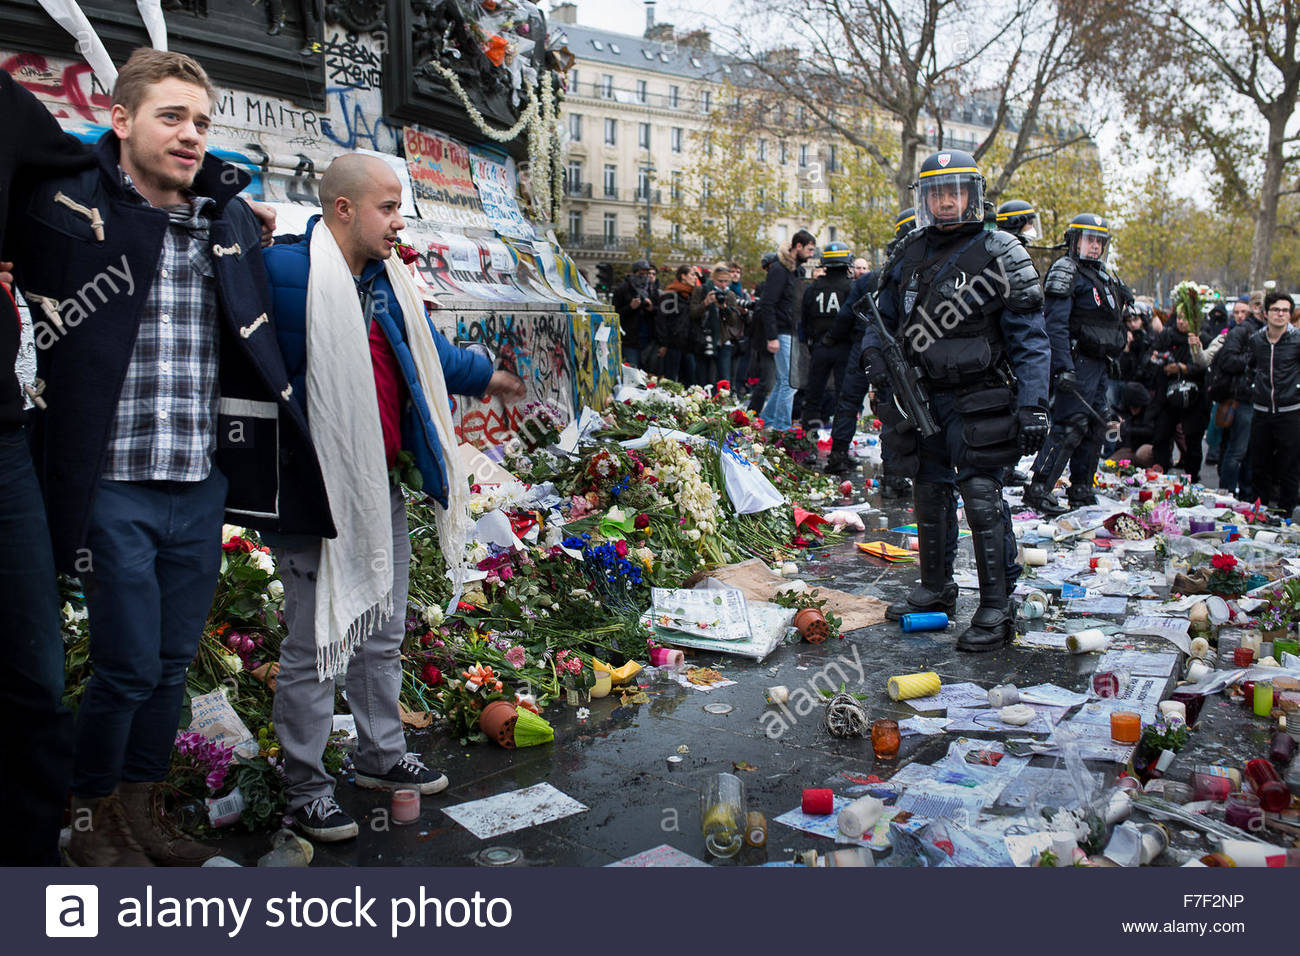 Paris, France. 29th November, 2015. Protestors march in Paris during a rally against global warming on November 29, 2015 in Paris, on the eve of the UN conference on climate change COP21. - Anthony Micallef/ © Haytham Pictures/Alamy Live News Stock Photo